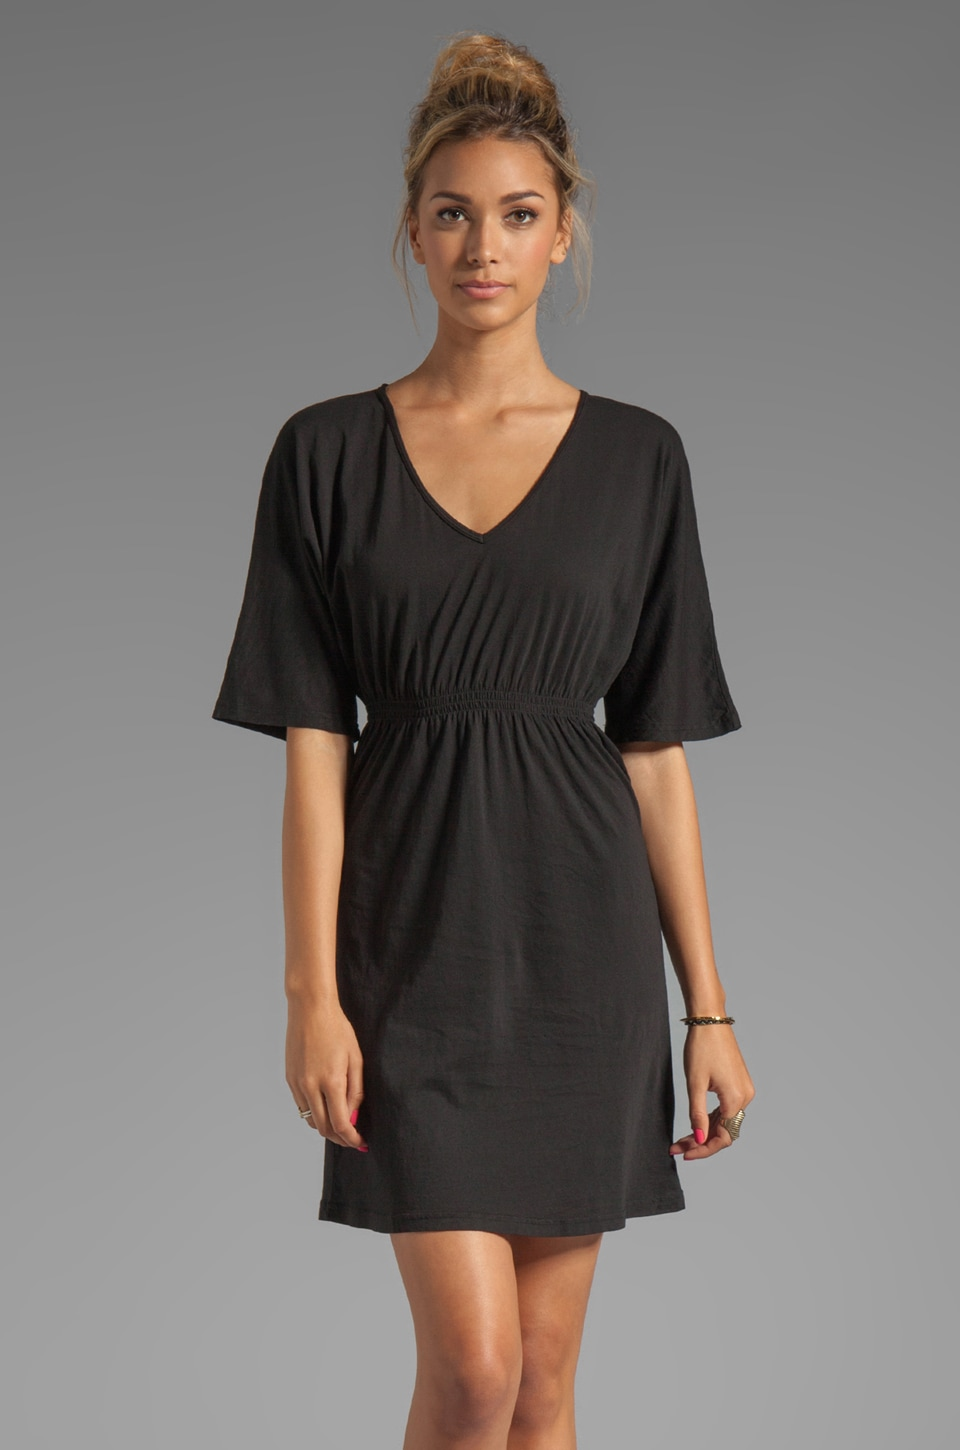 Bobi Light Weight Jersey Short Sleeve Dress in Black